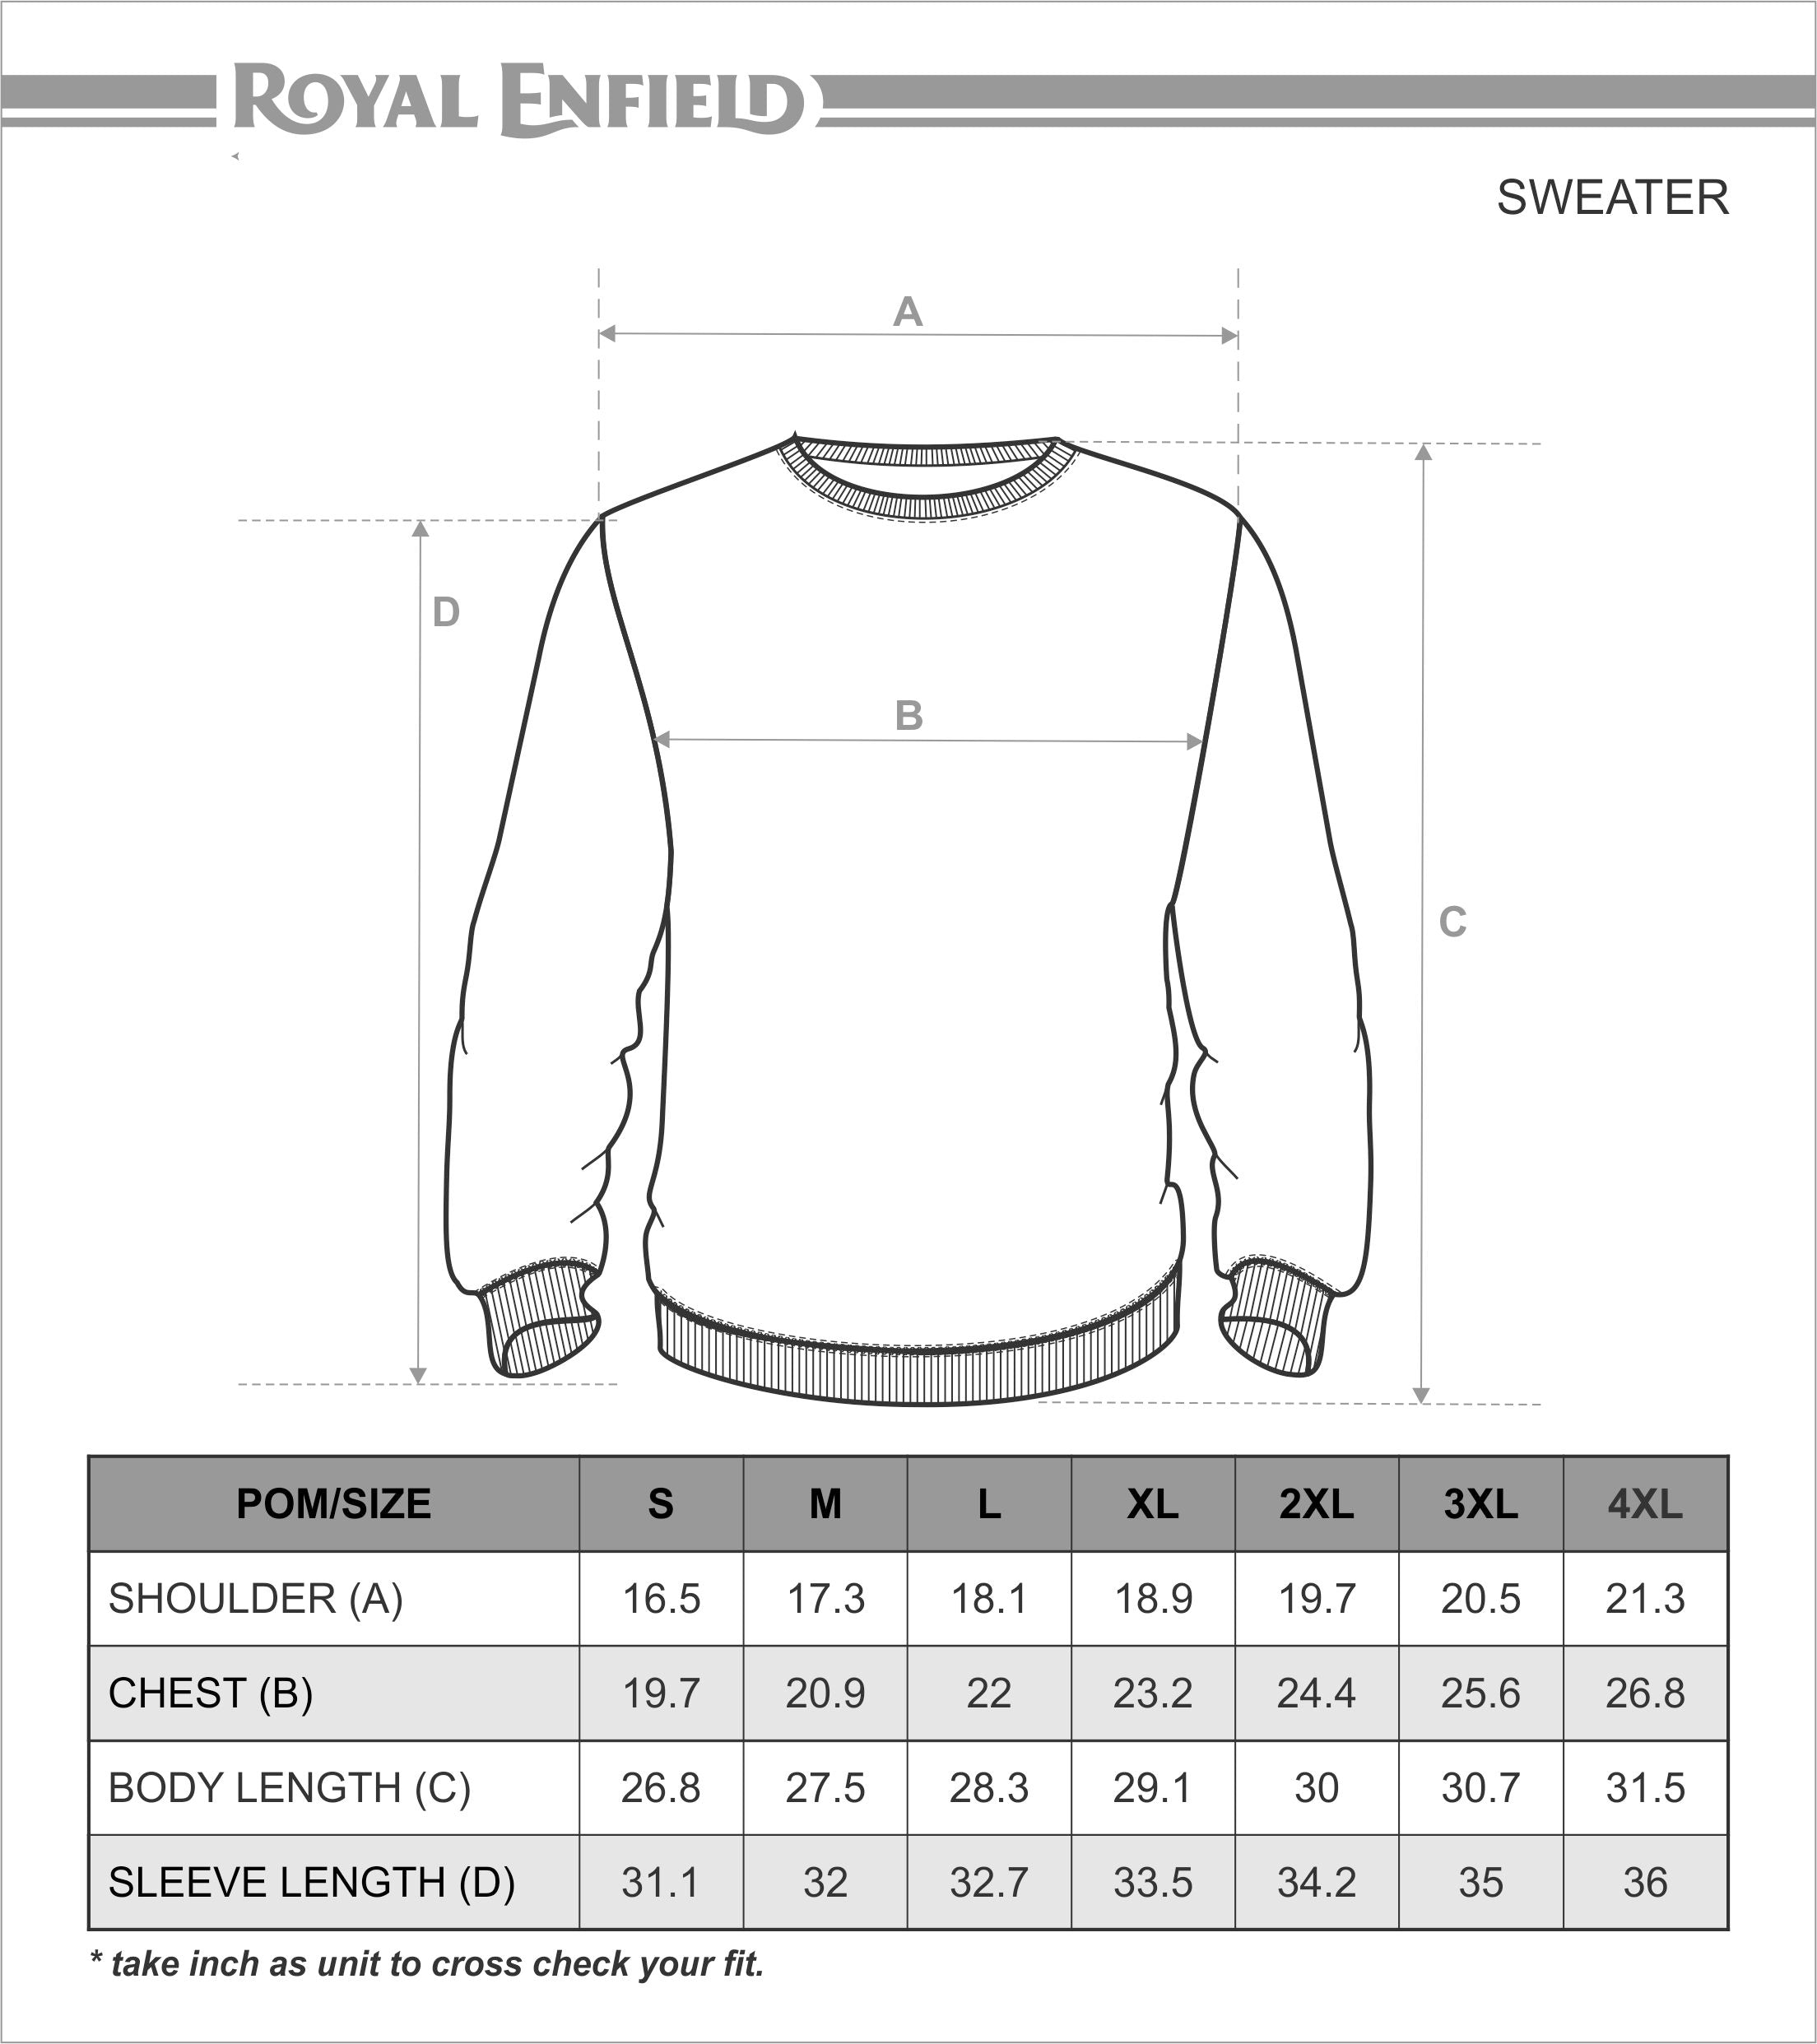 Baby sweater measurements often indicate the measurements for the width, bust circumference and the length of the sweater. Each size, from Infant to 4T up to 5T, has a specific measurement for the width, bust circumference and length so it's best to check your baby's measurements first in these three areas prior to purchasing a new sweater.